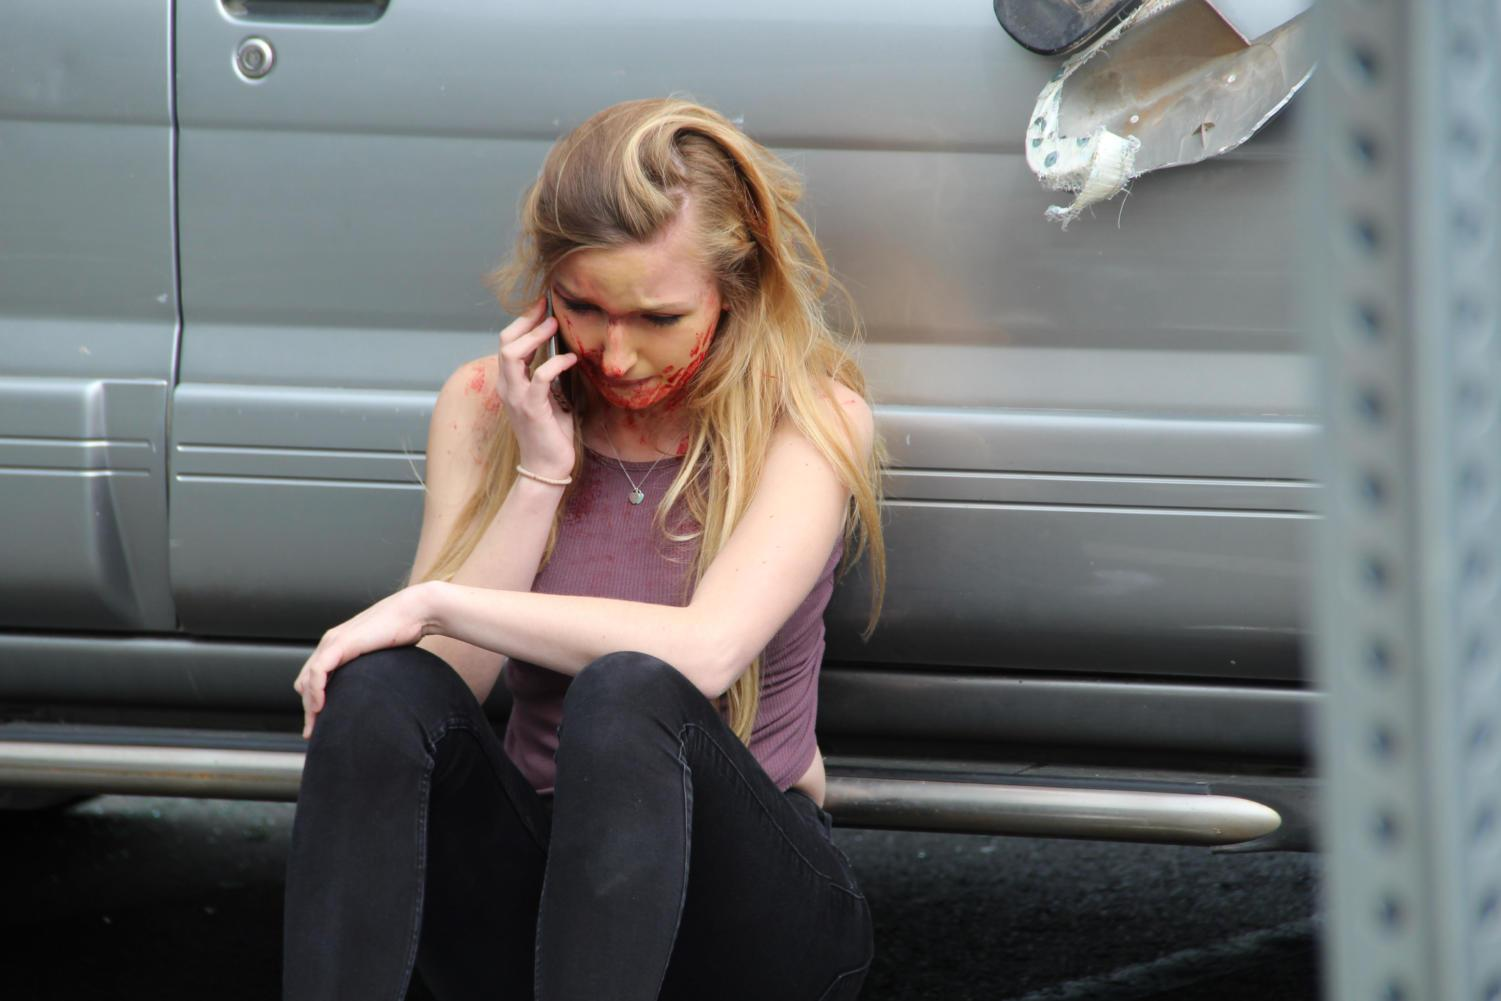 Jessica Cramer, a senior, calls 911 in a panic during the drunk-driving car crash simulation on April 15.